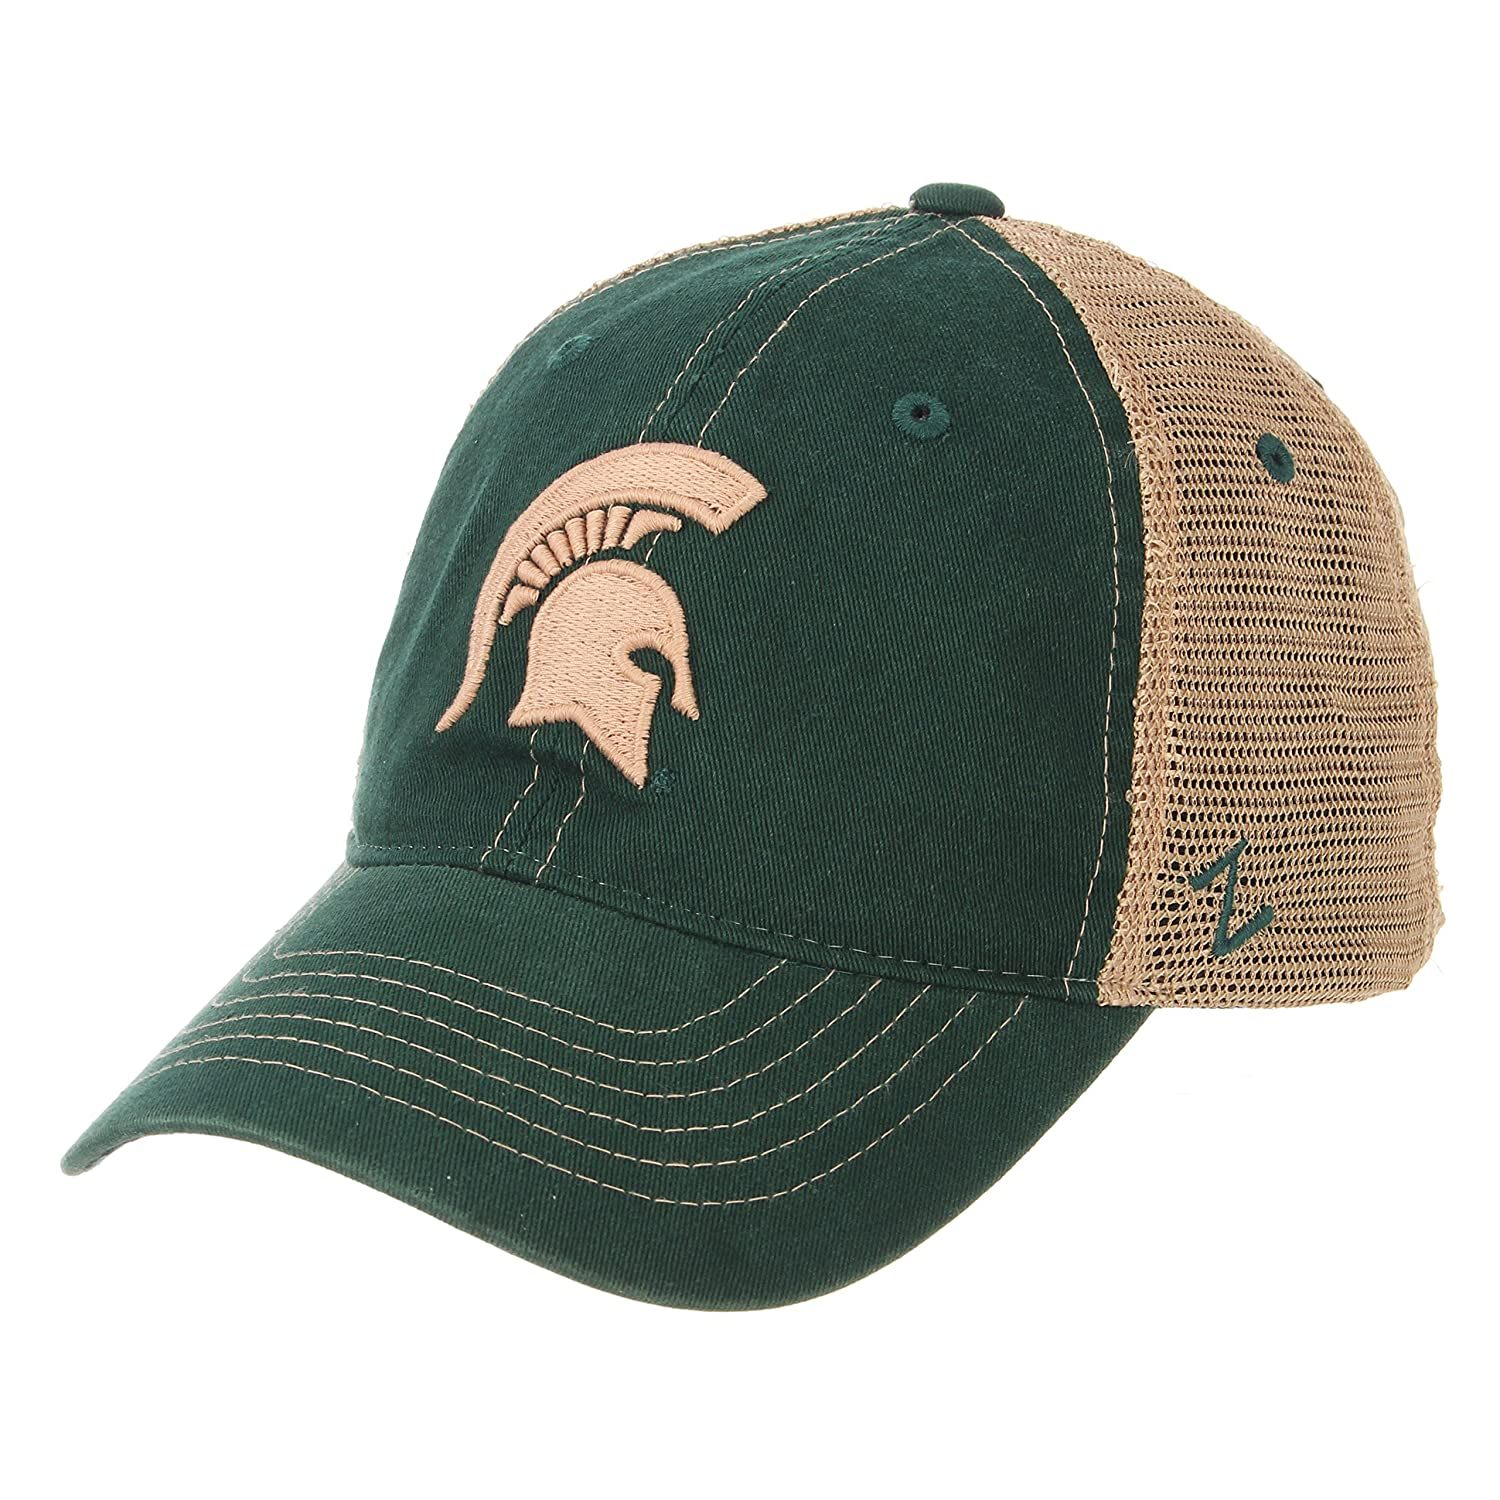 Institutionリラックスキャップ B0791YQ72V B0791YQ72V Michigan Michigan State Spartans Spartans Adjustable, アサクチグン:0a472a74 --- acee.org.ar